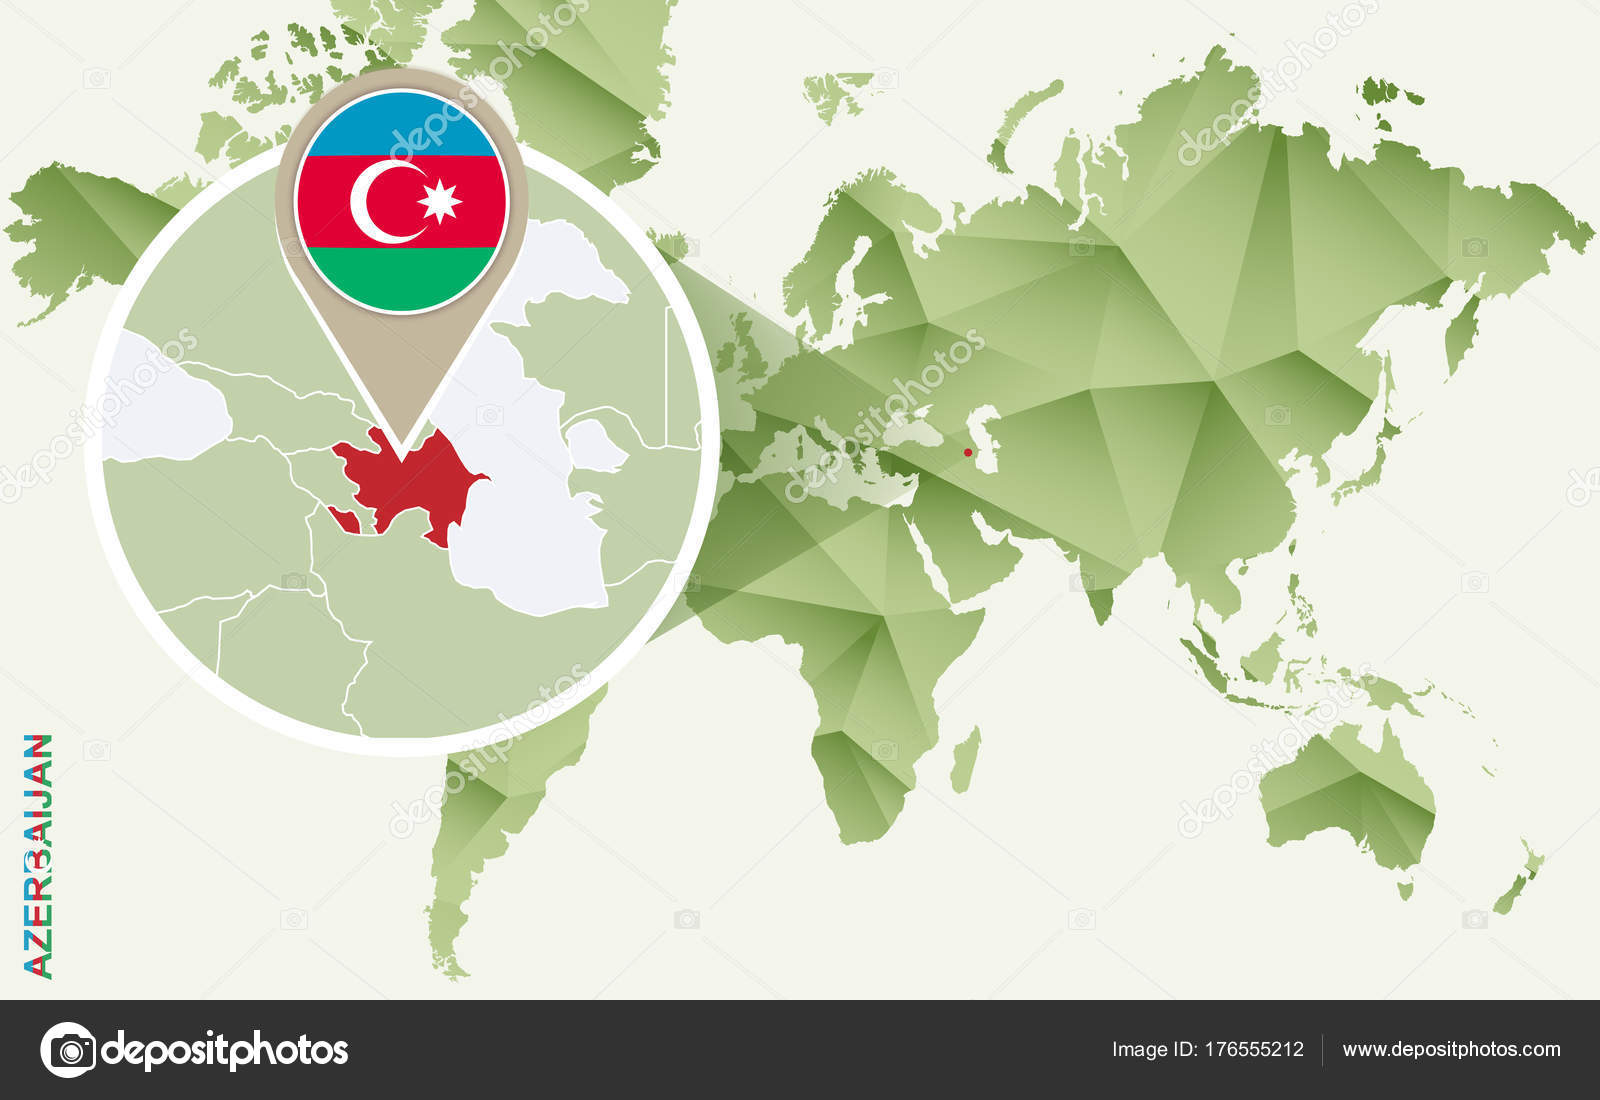 Infographic For Azerbaijan Detailed Map Of Azerbaijan With Flag Stock Vector C Boldg 176555212